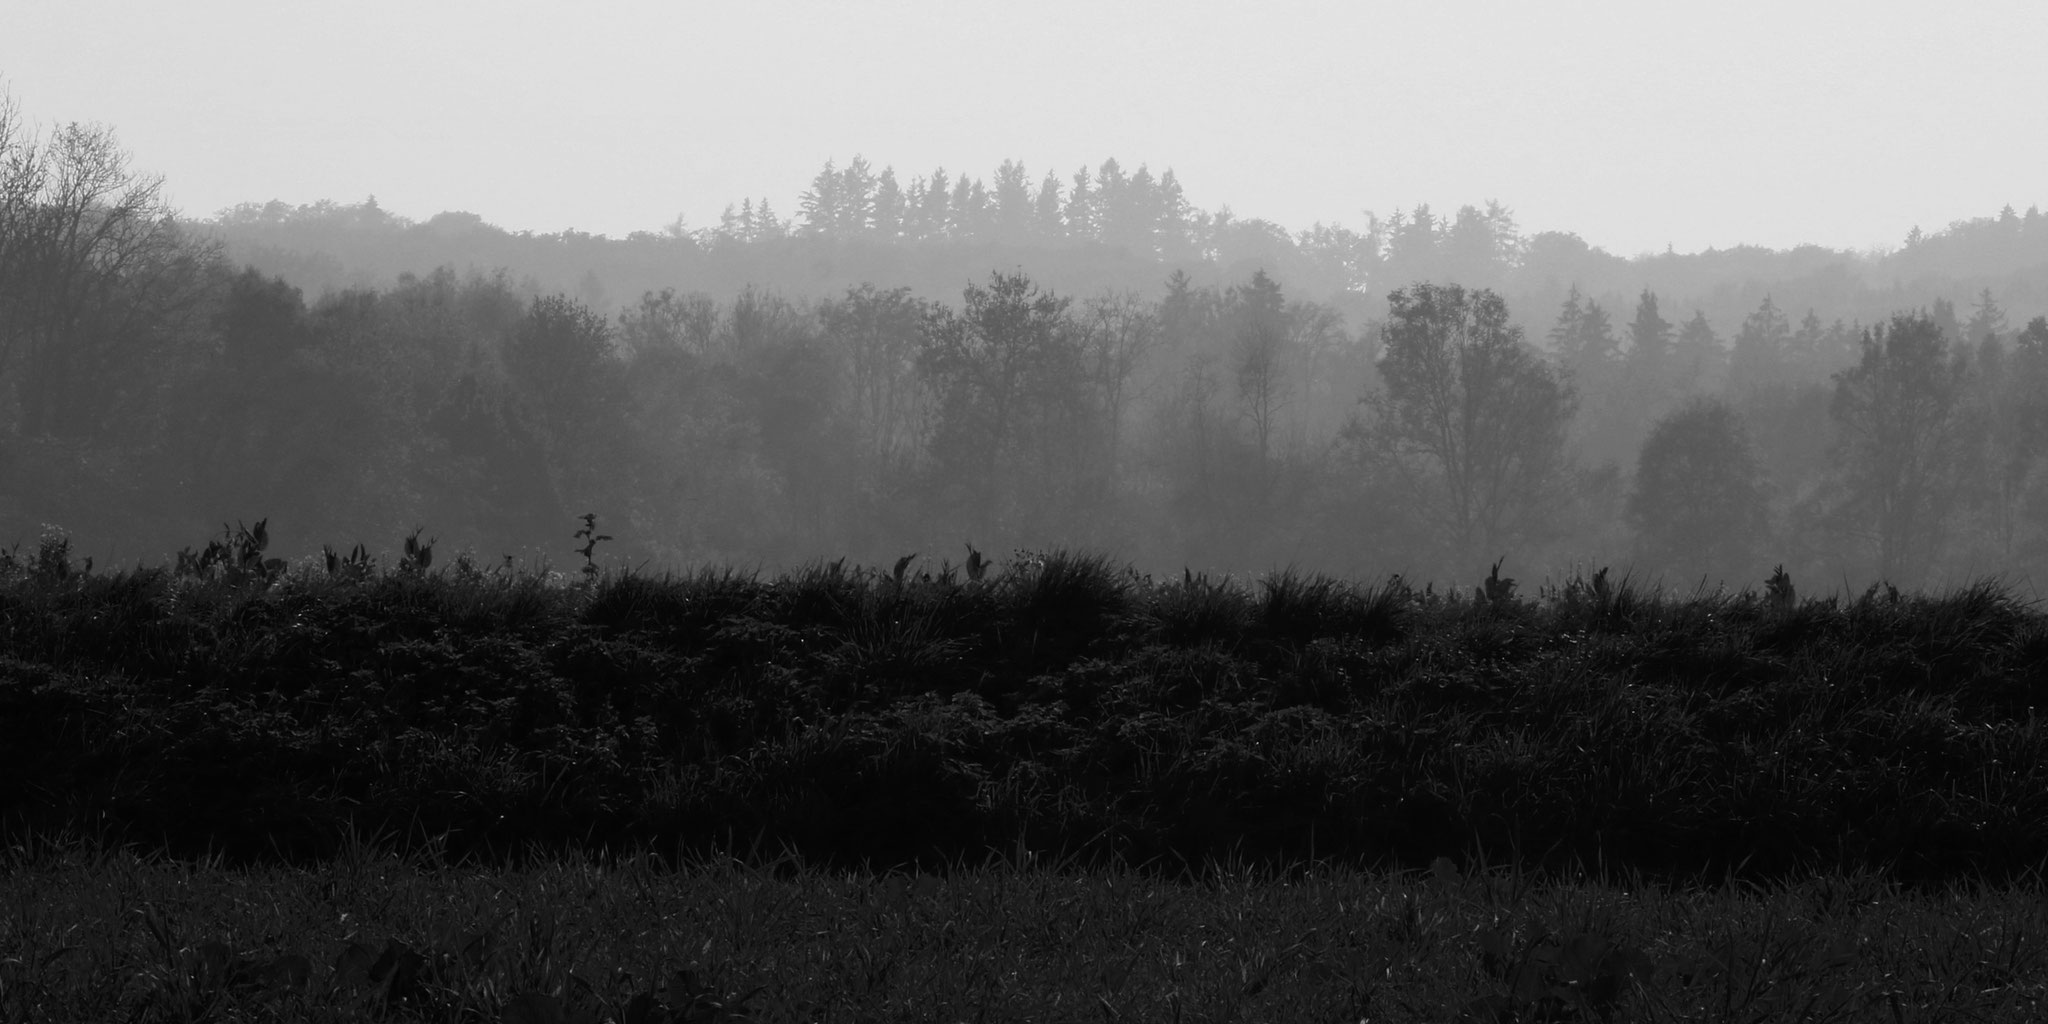 And the fog rising from the Würm transforms the forests into a fairytale landscape